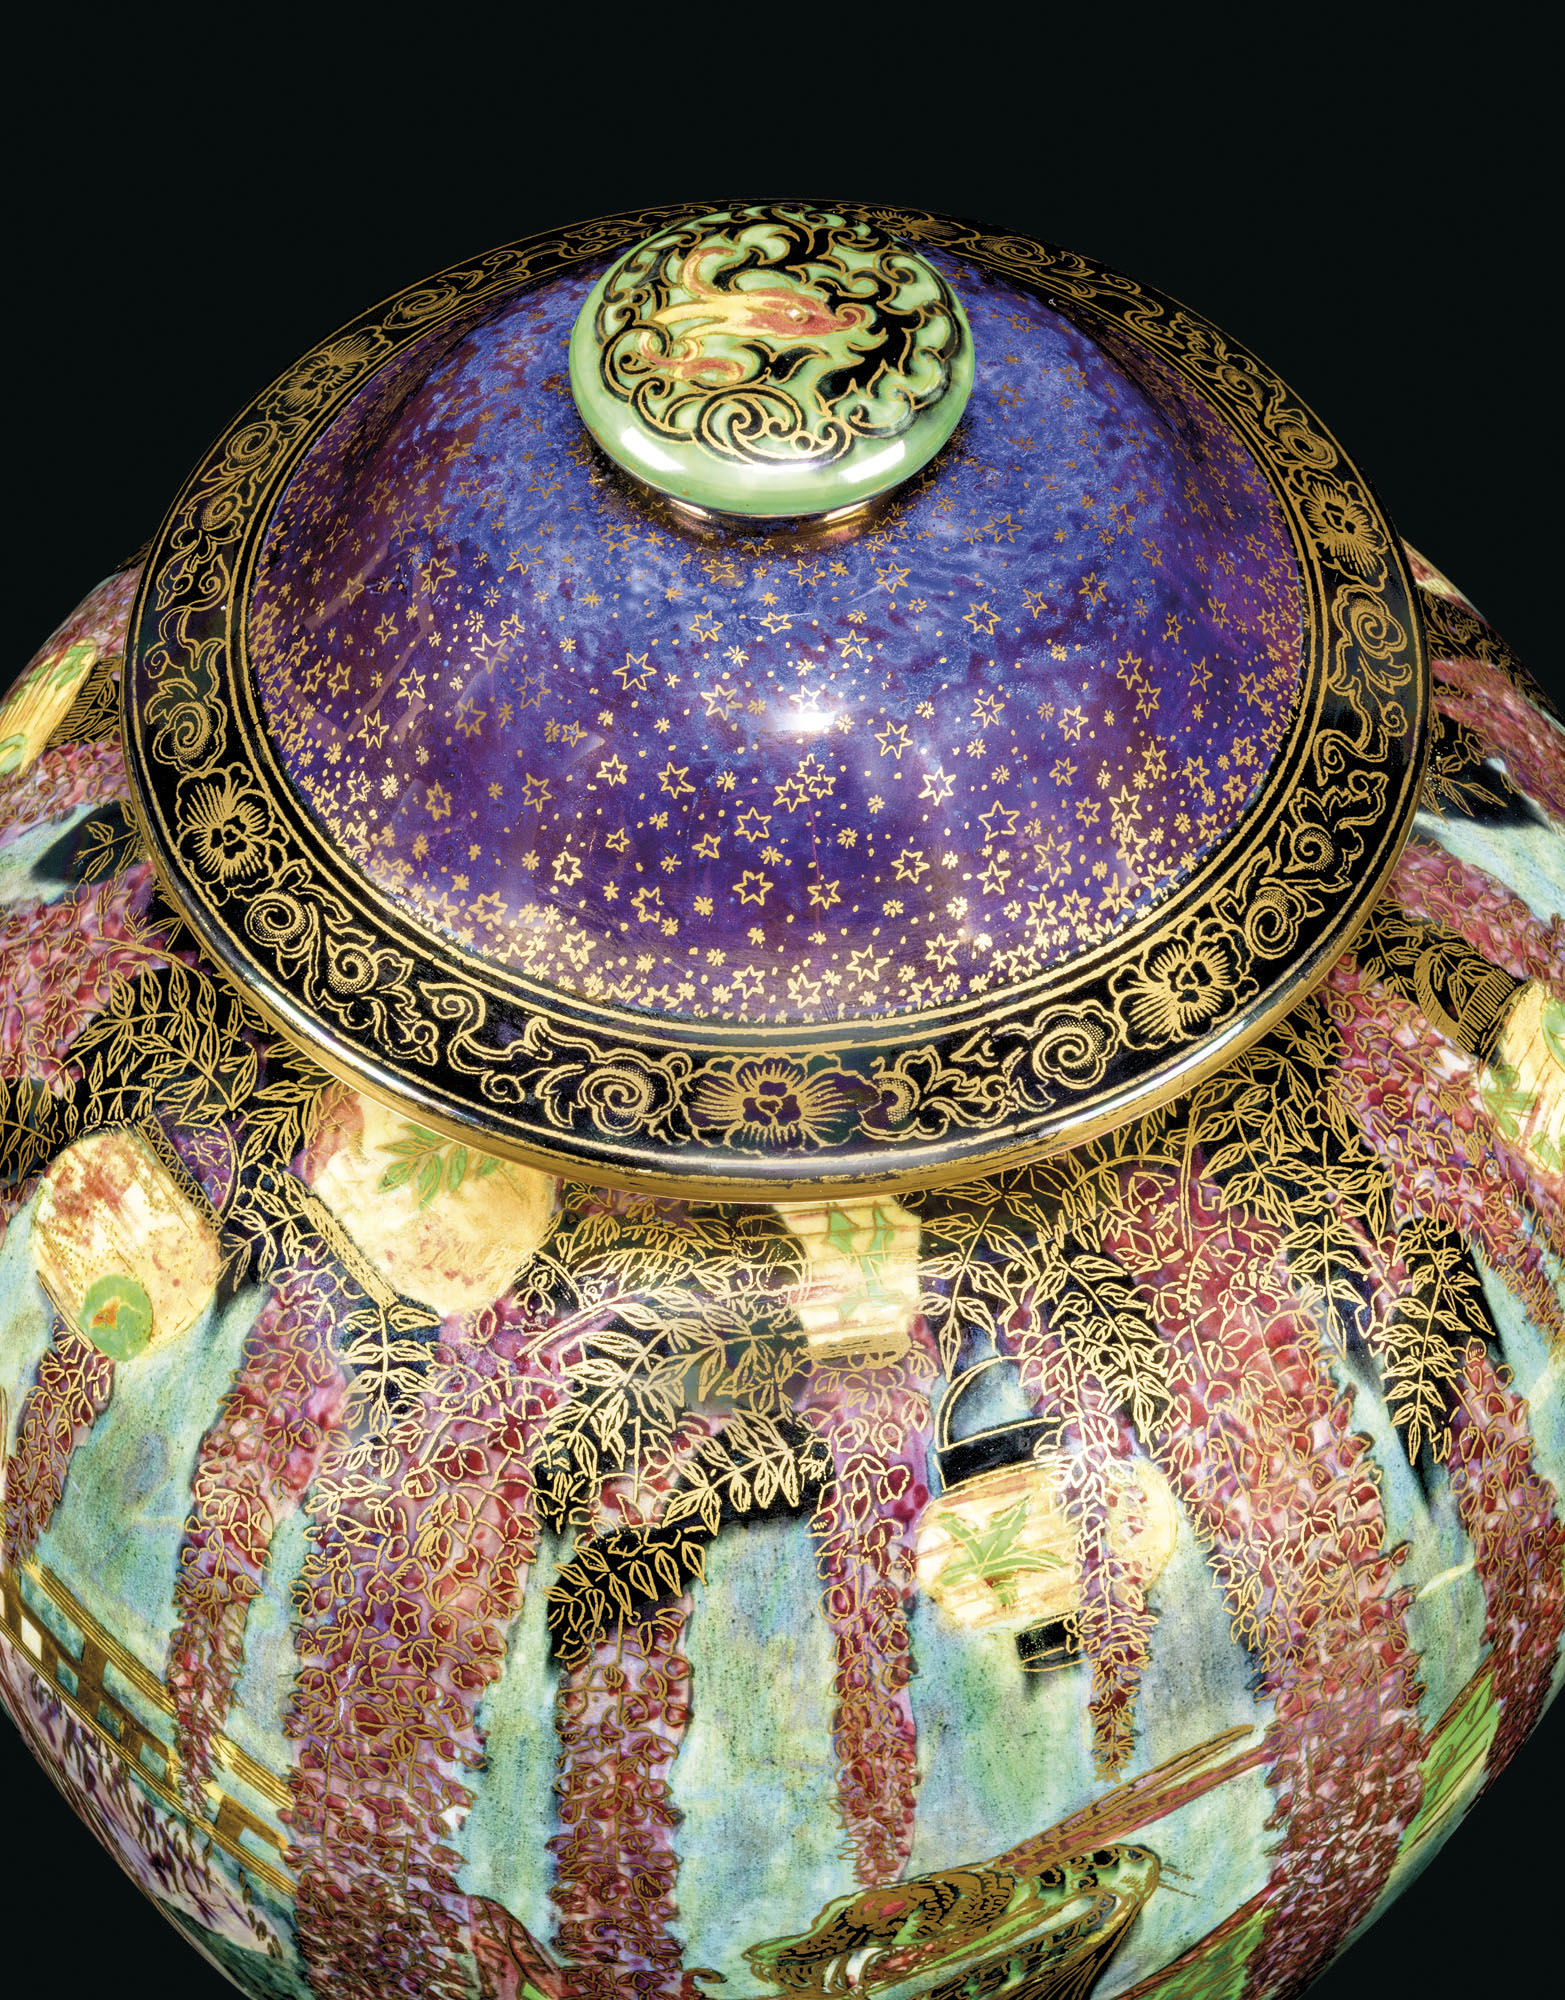 A LARGE WEDGWOOD FAIRYLAND LUSTRE 'TEMPLE ON A ROCK' VASE AND COVER